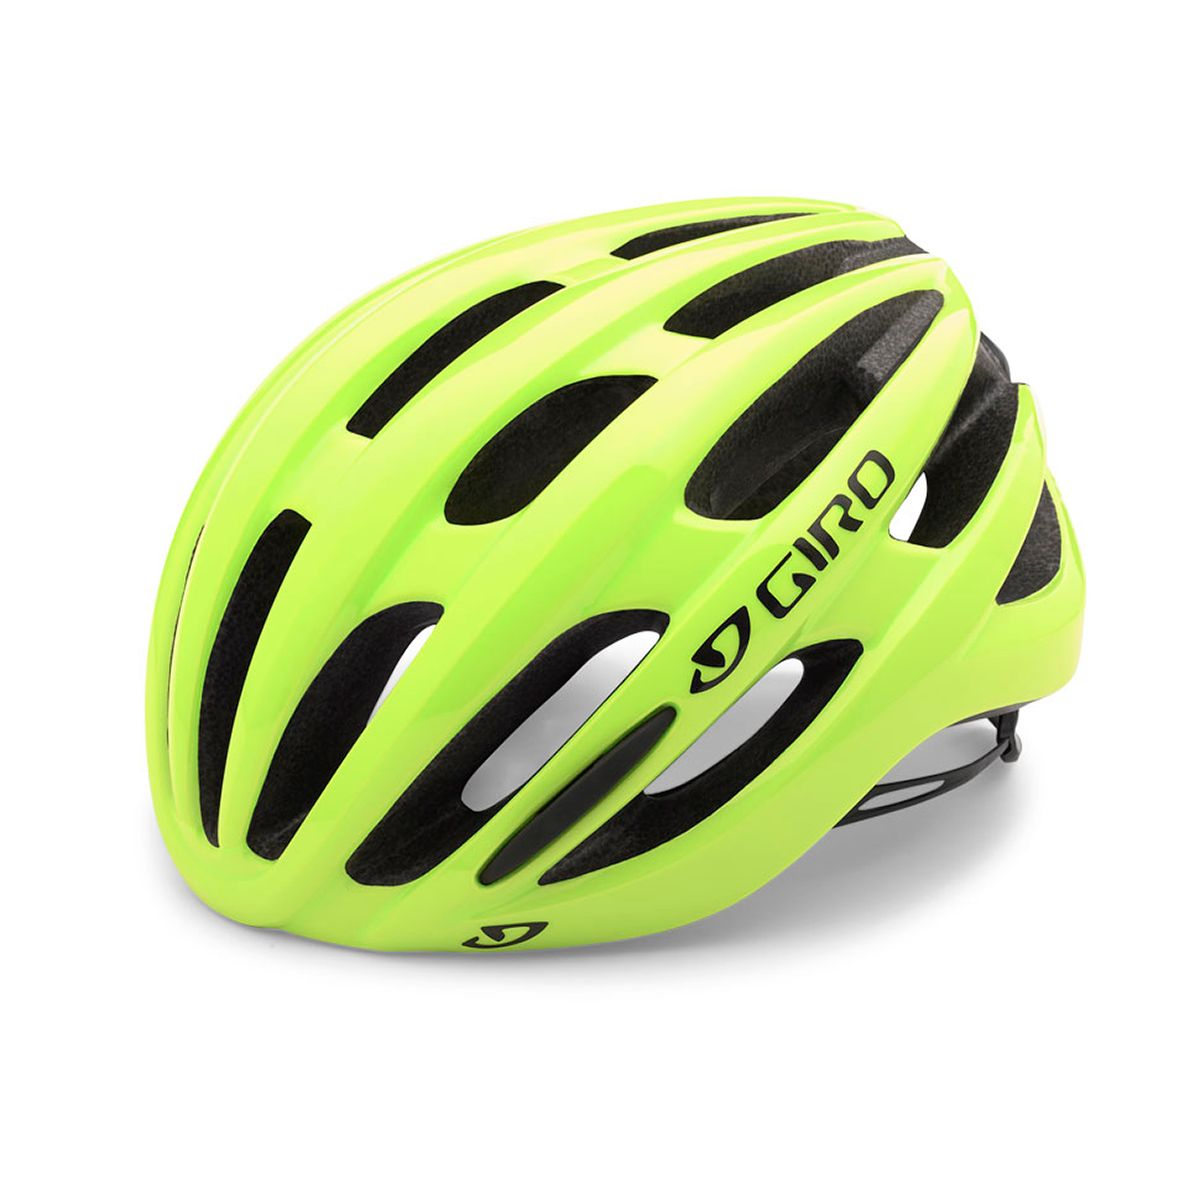 FORAY road helmet